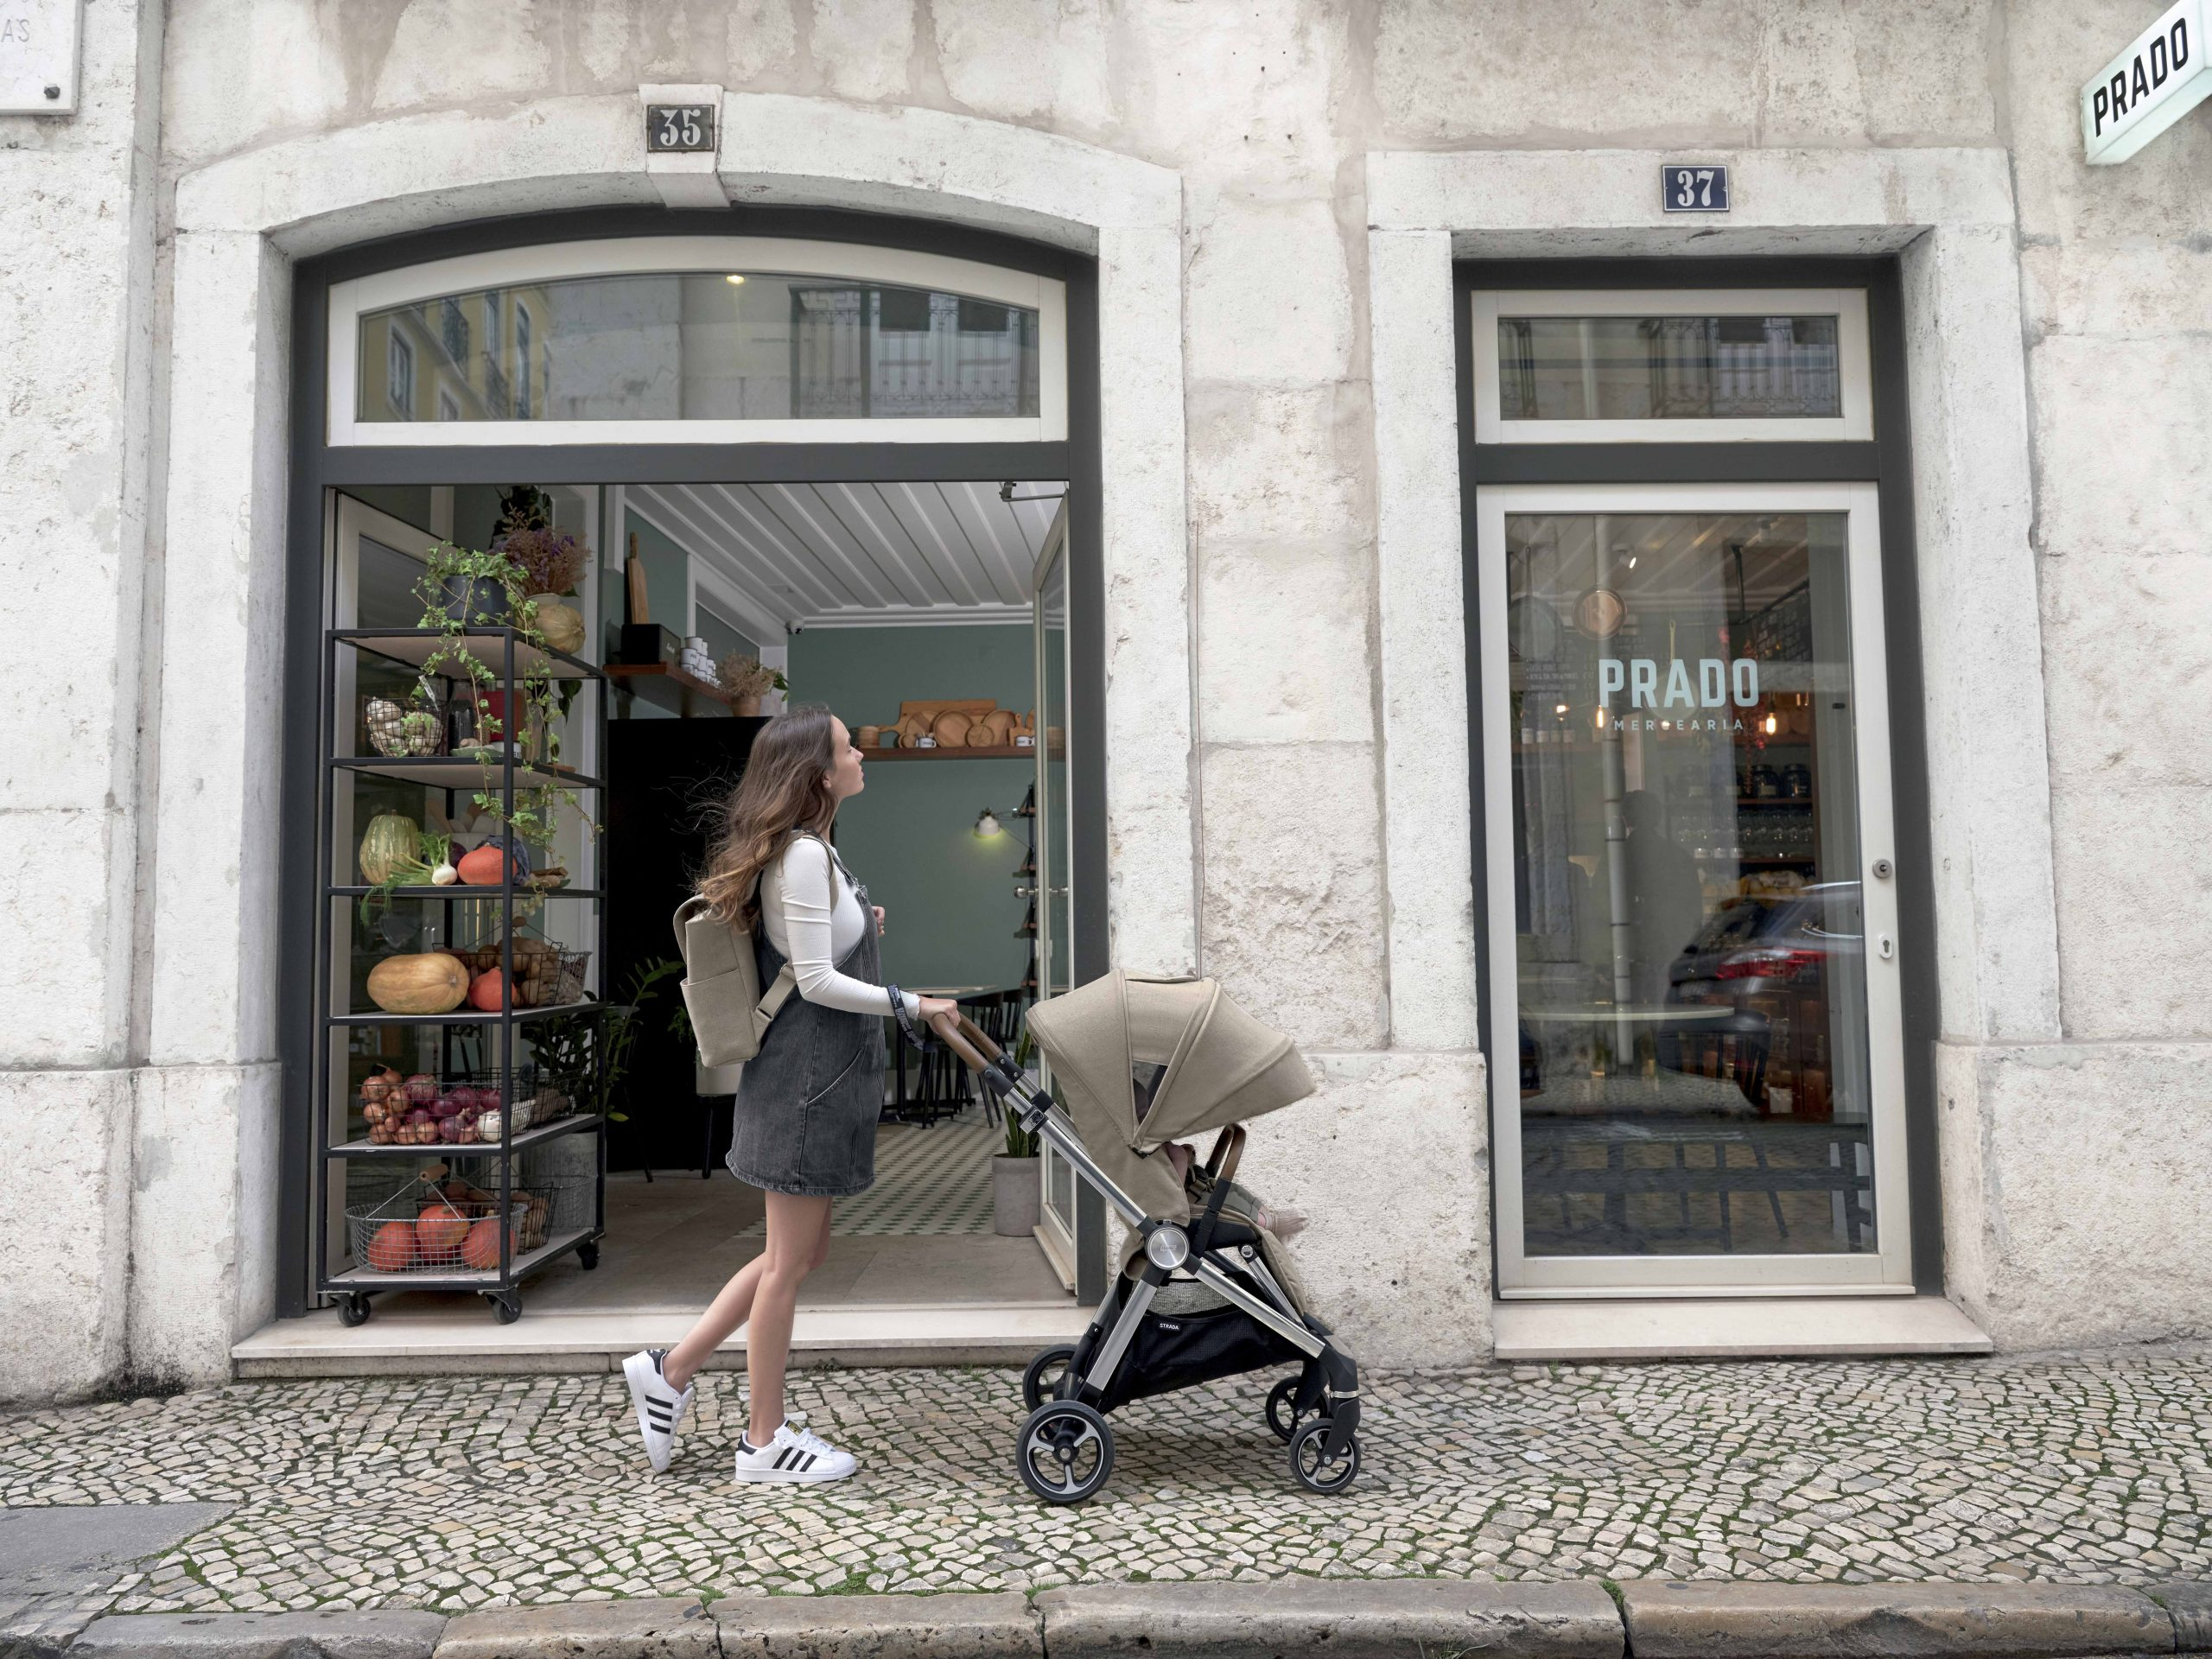 5 Features to Consider When Choosing a Pushchair